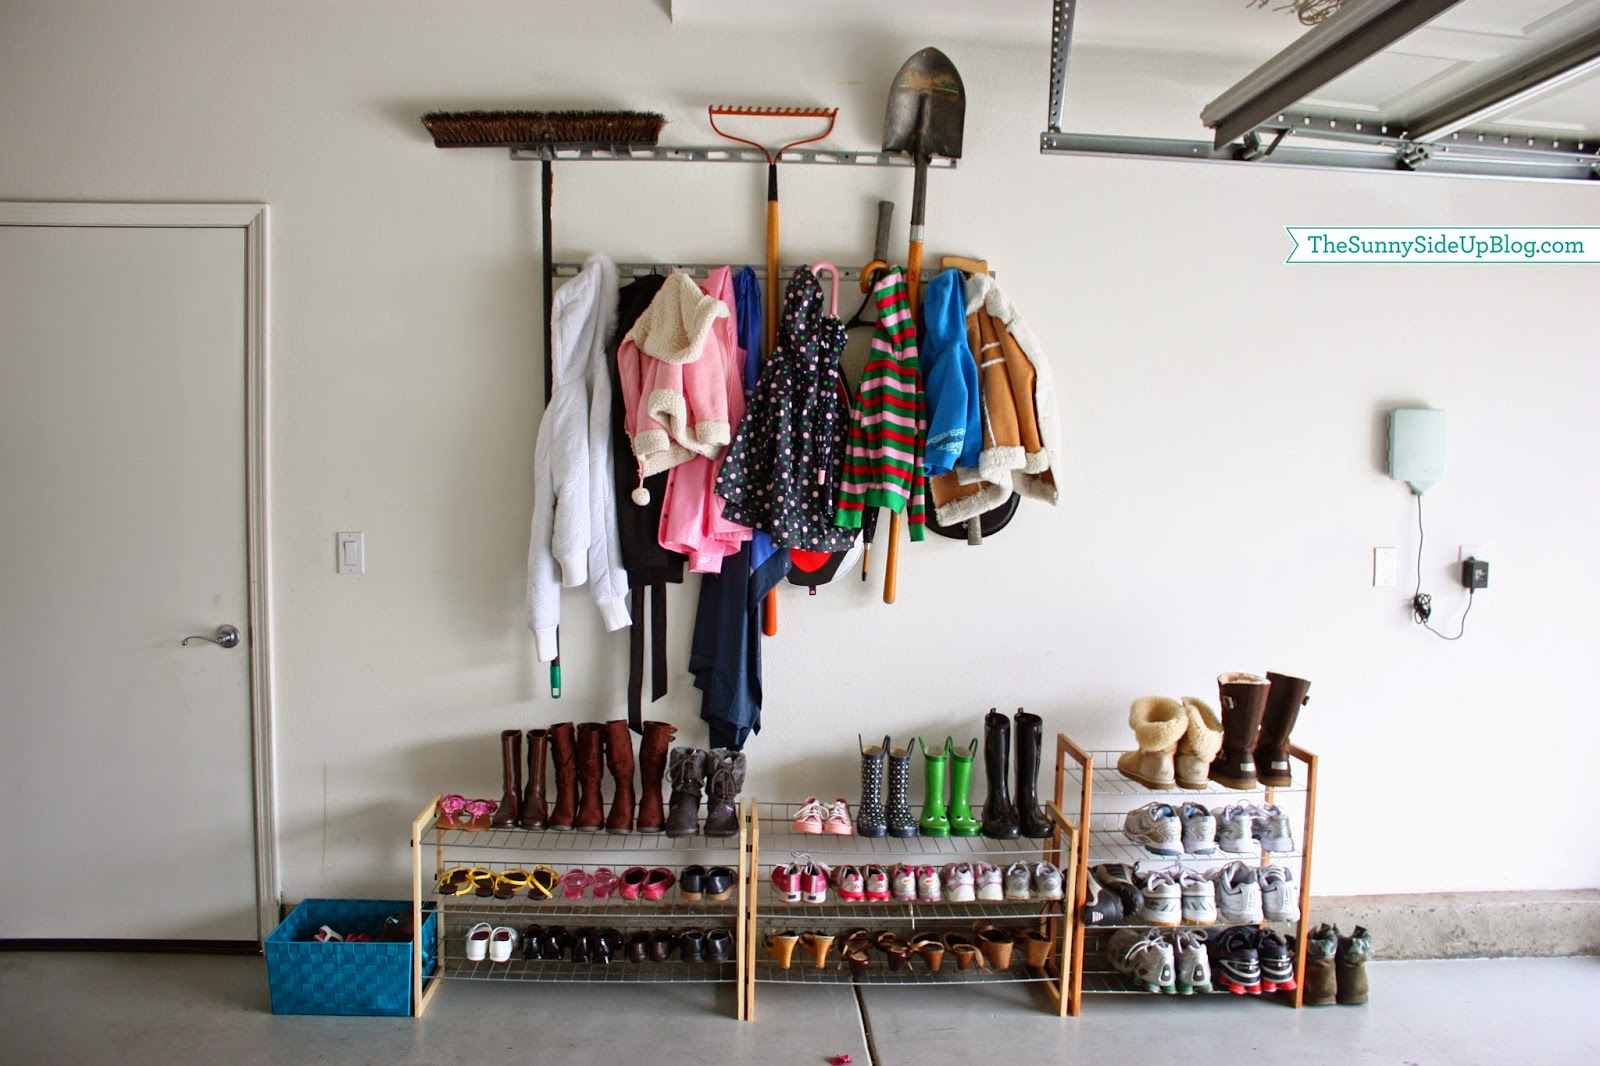 My new organized mudroom the sunny side up blog for Garage mudroom